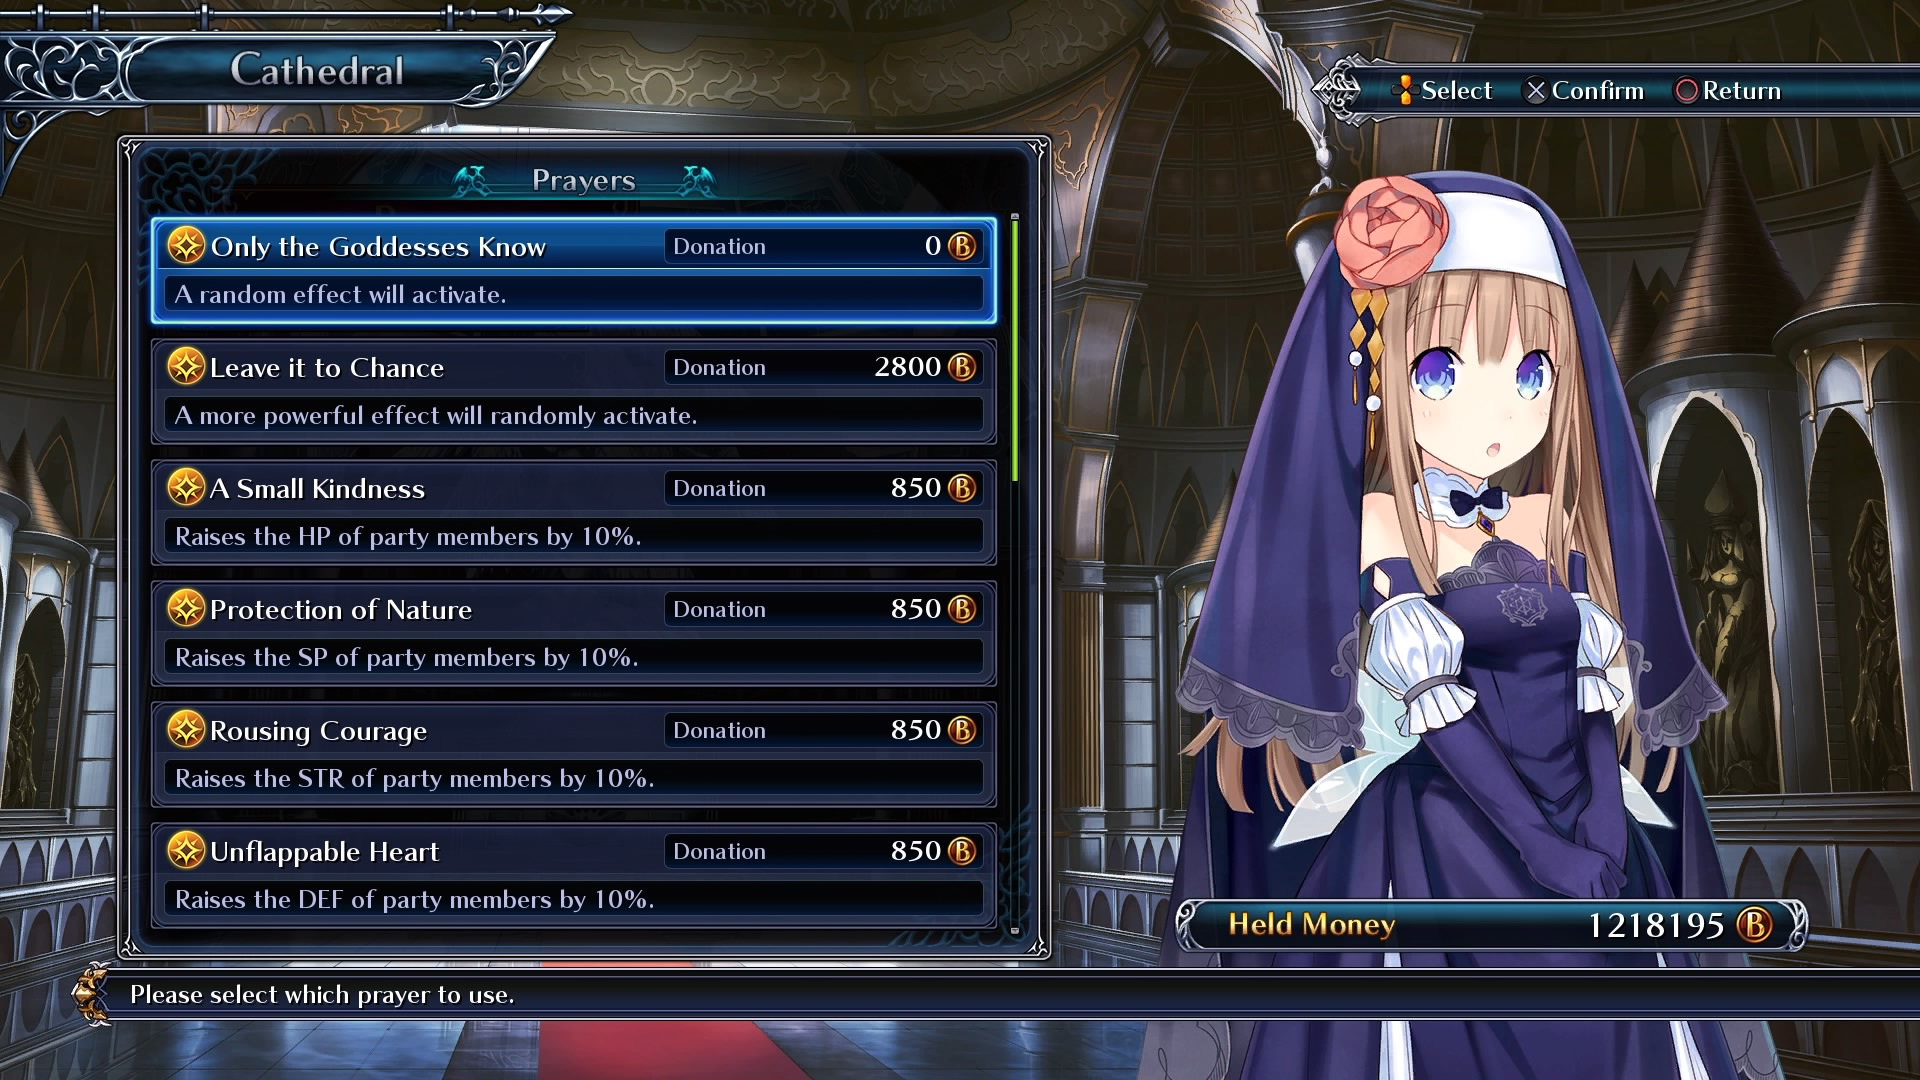 Steam Community Guide Cyberdimension Neptunia 4 Goddesses Camouflage Yourself With The Nano Mirage Effect May These Feelings Reach